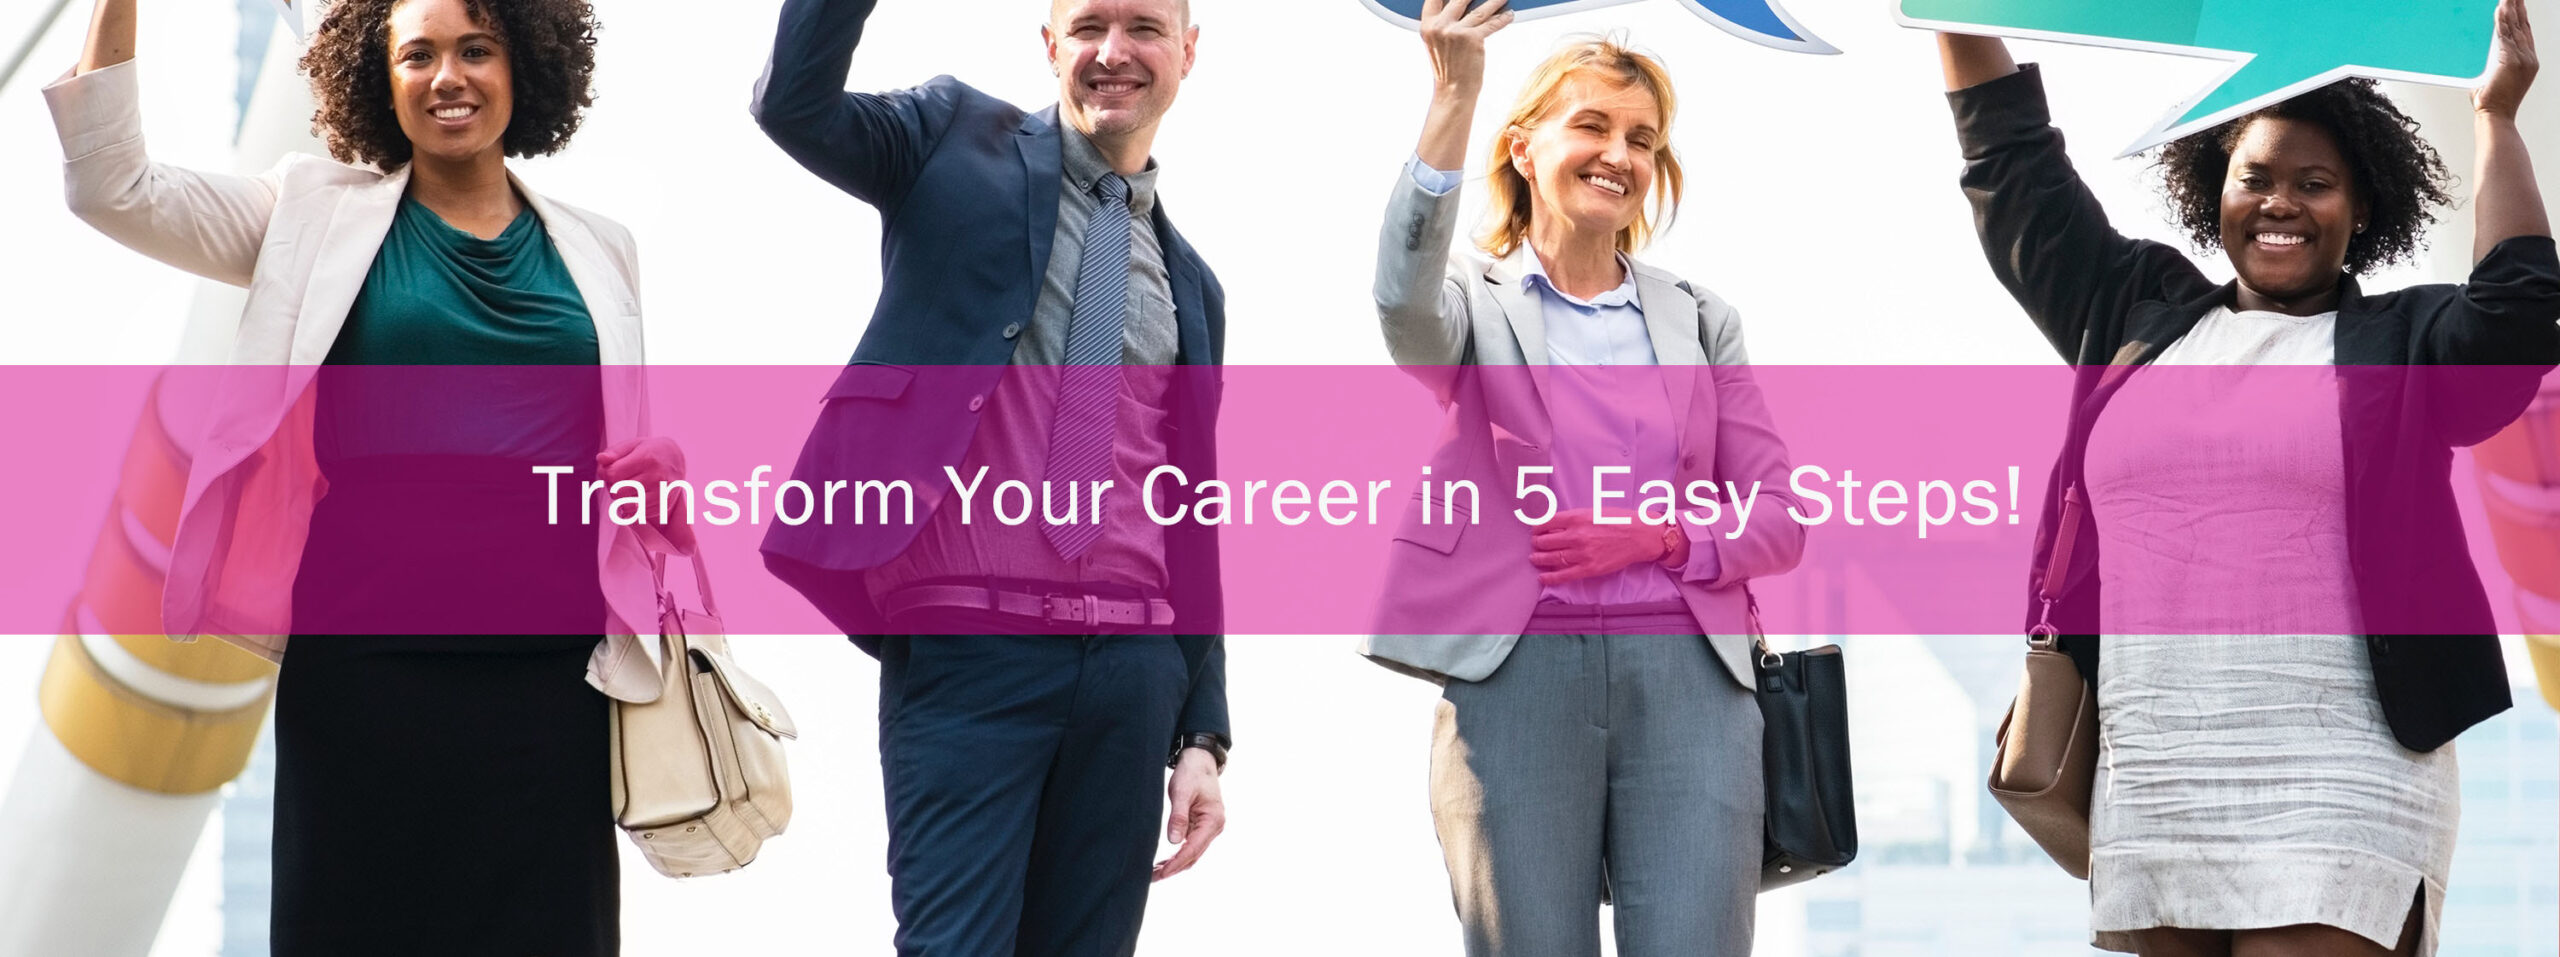 Career Transitions Made Easy video course